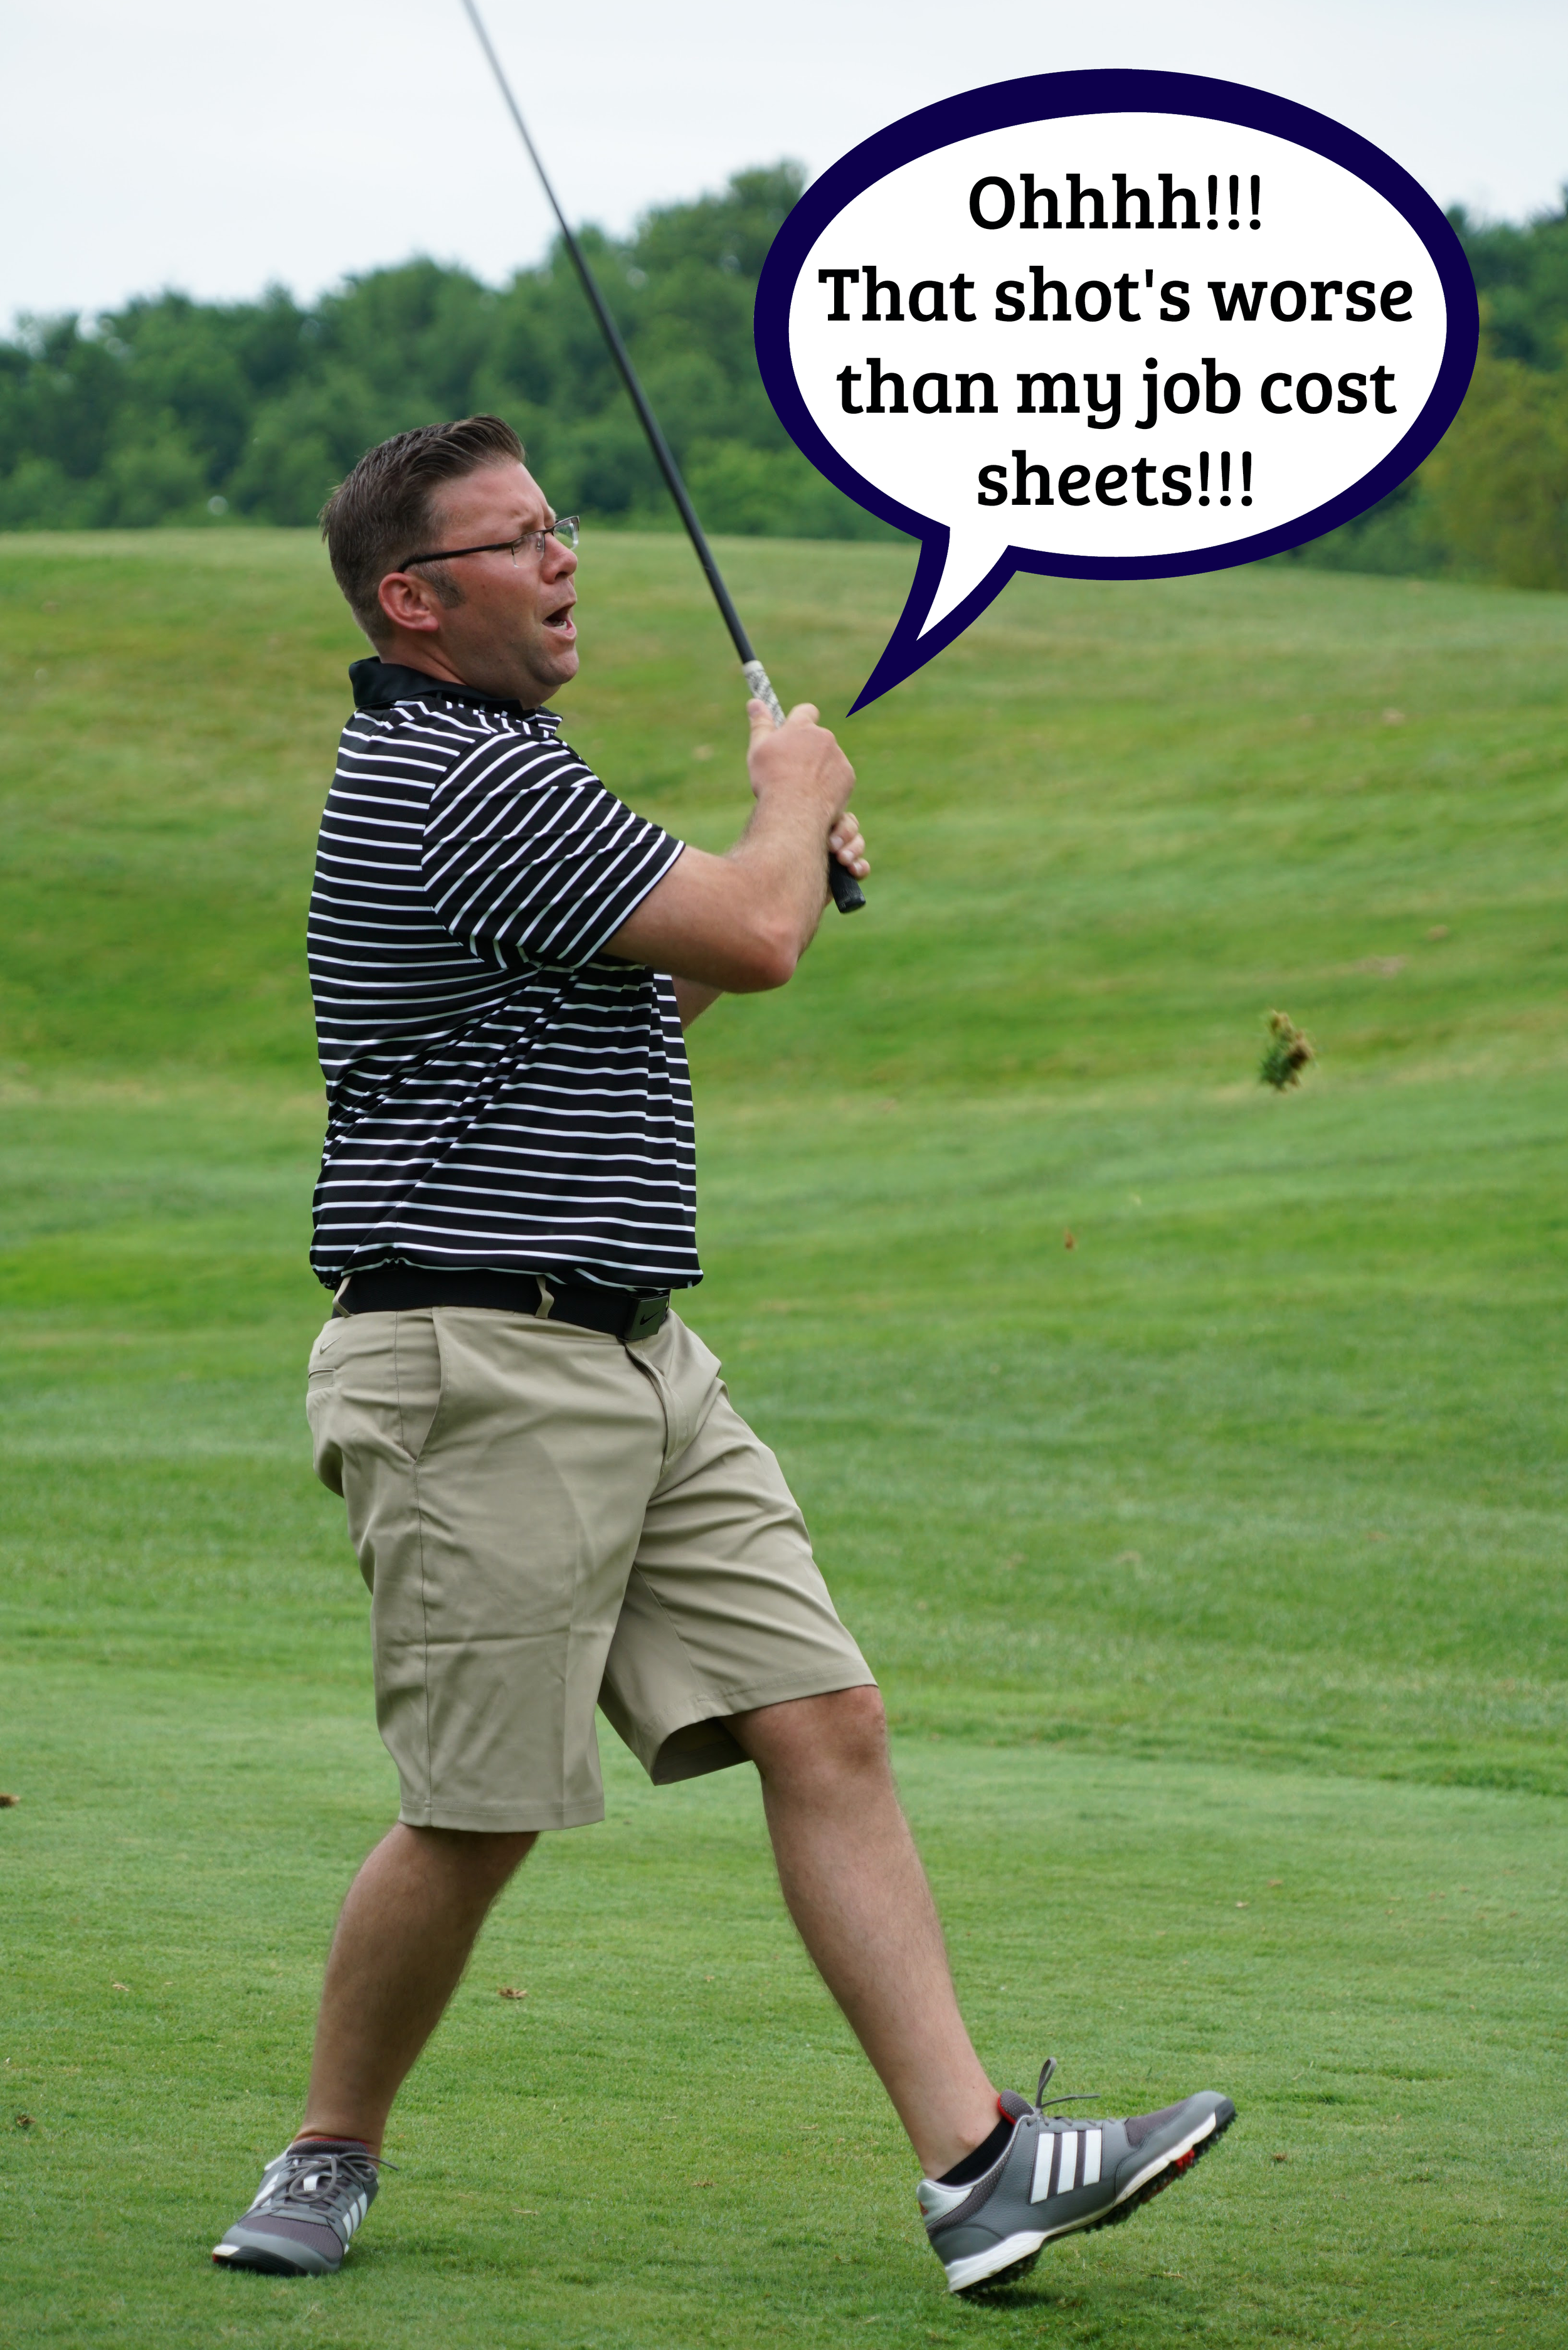 Jeff Piazza,Division Manager - Kalkreuth Roofing & Sheet Metal Inc.